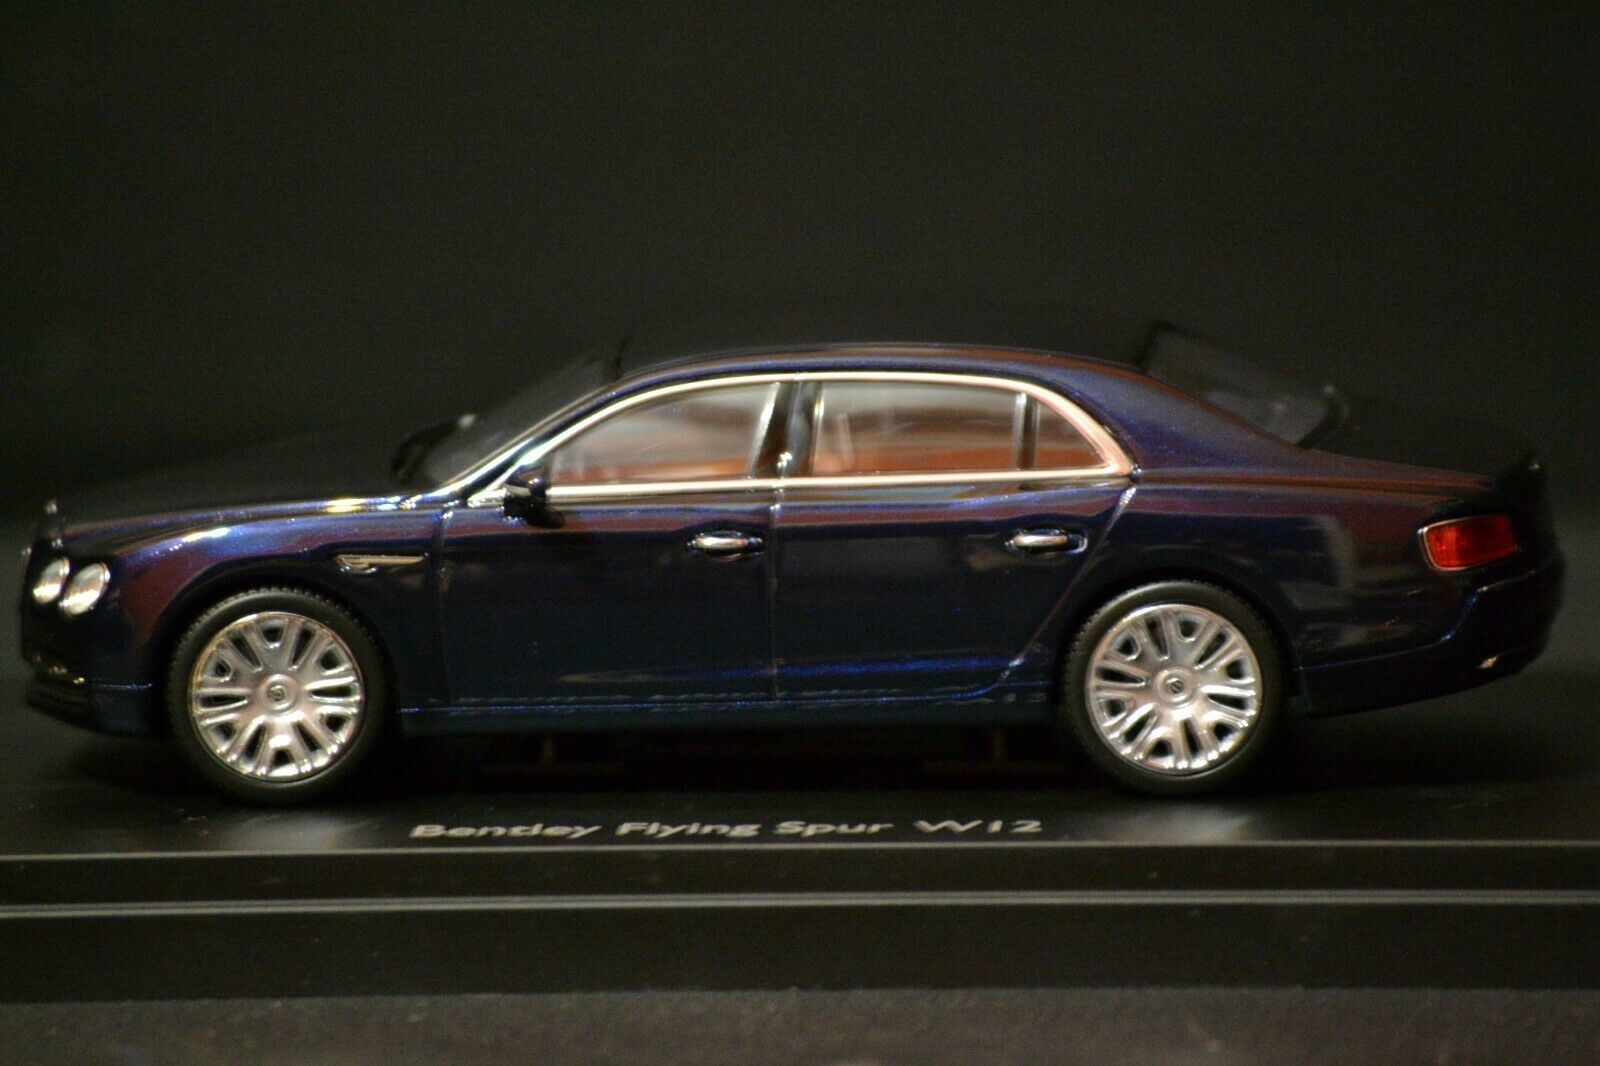 vendita scontata online di factory outlet Bentley Flying Spur W12 2013 Kyosho Kyosho Kyosho Dealer edizione diecast in scale 1 43 BL1081  autentico online